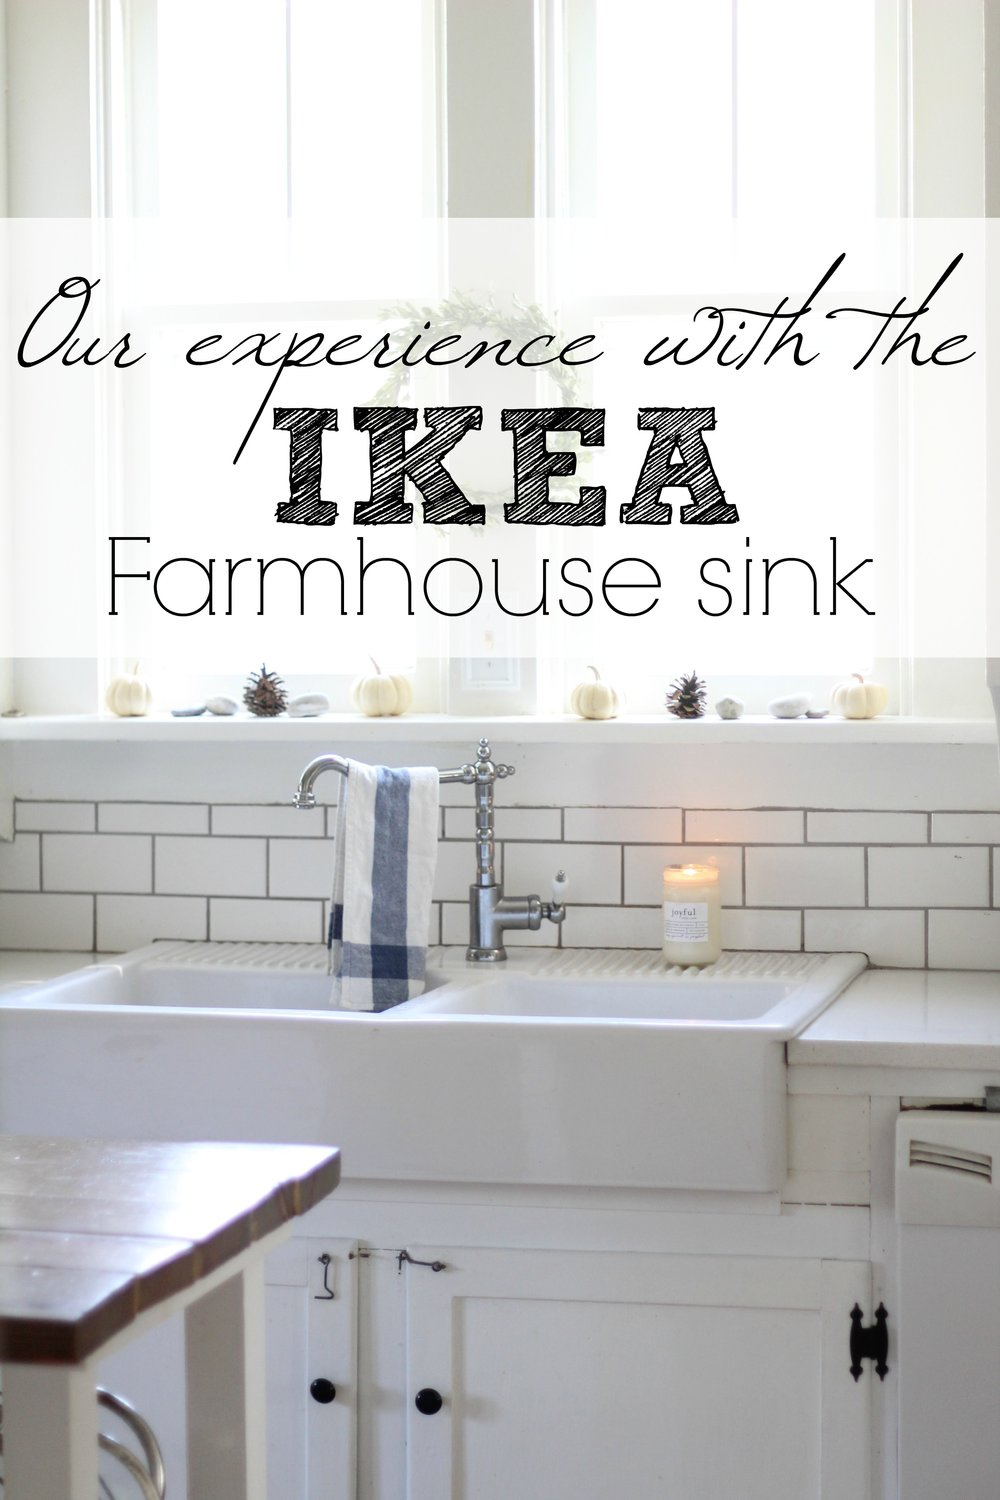 White Farmhouse Sinks For Sale Our Experience With The Ikea Domsjo Double Bowl Farmhouse Sink